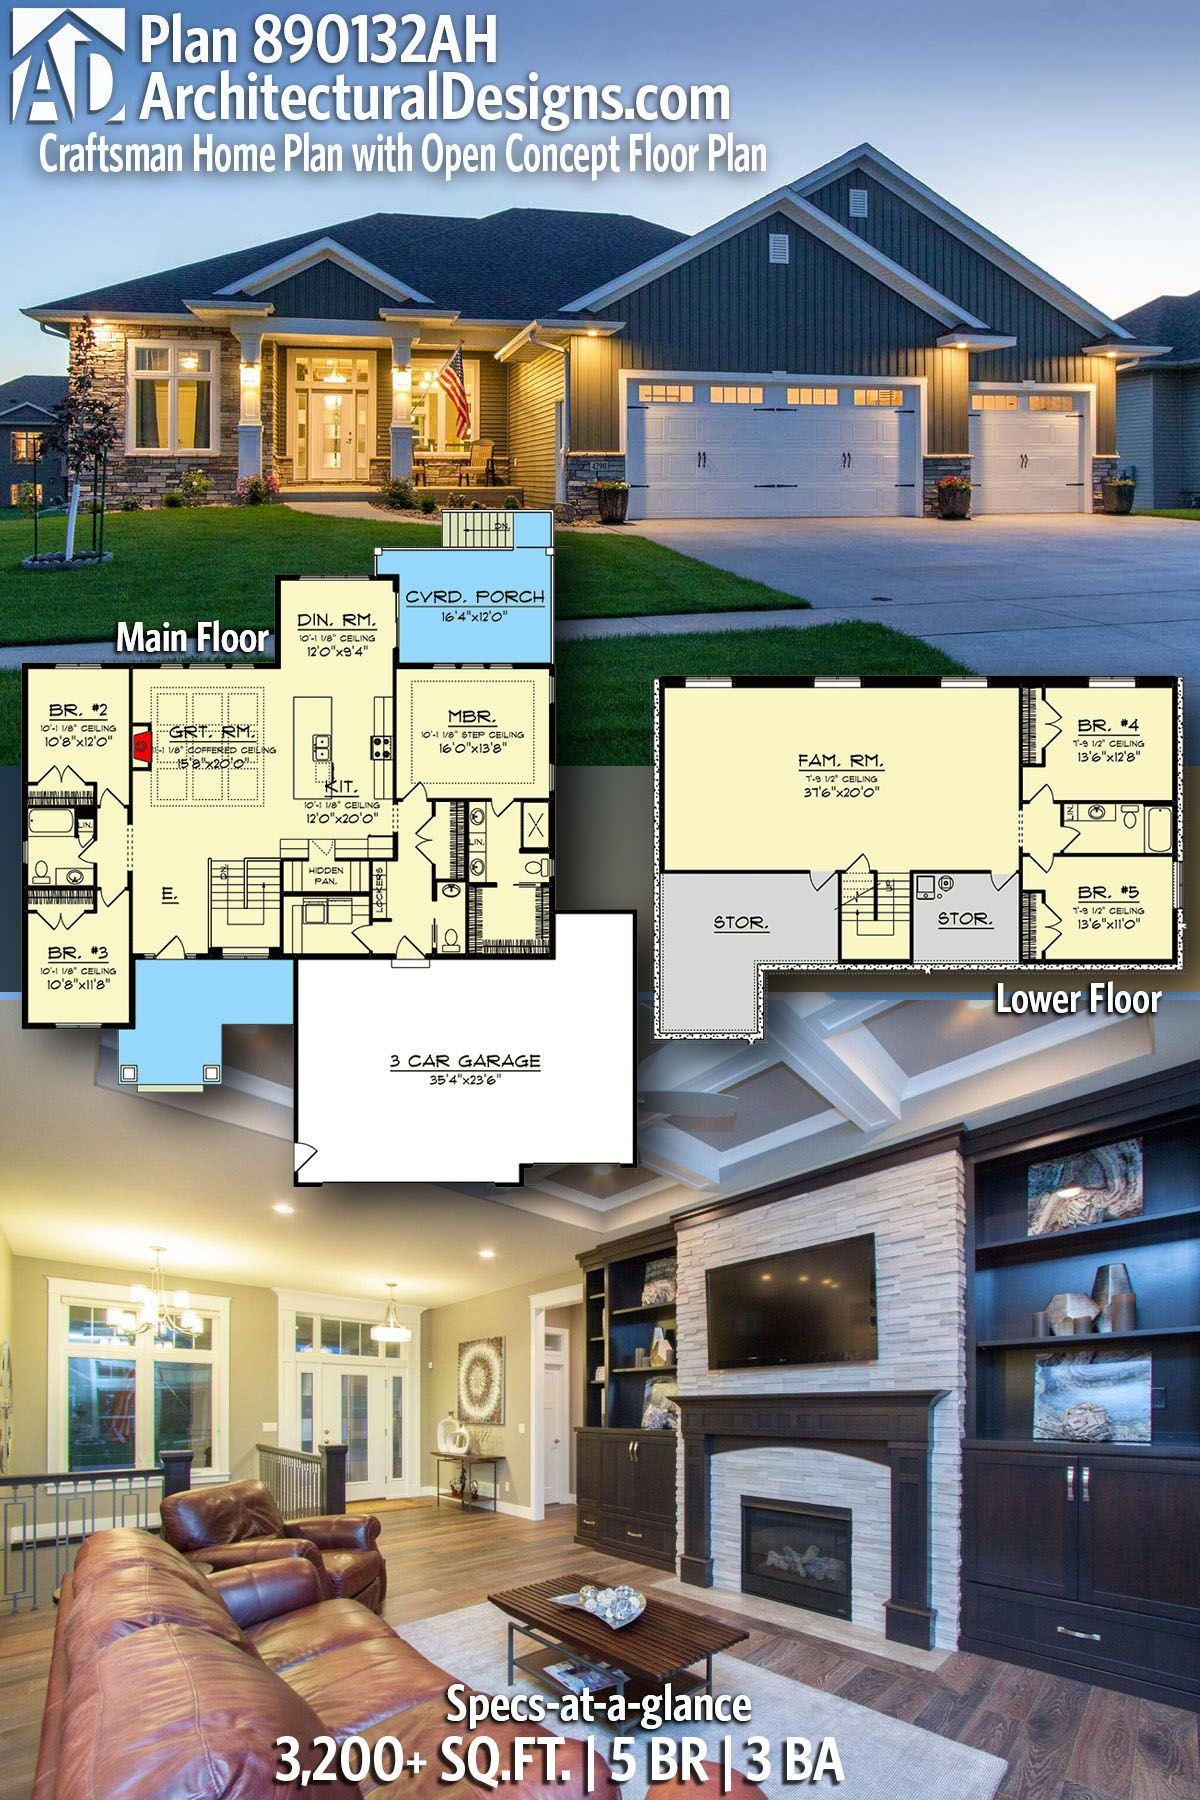 Plan 890132ah Craftsman Home Plan With Open Concept Floor Plan Craftsman House Plans Craftsman House Architectural Design House Plans